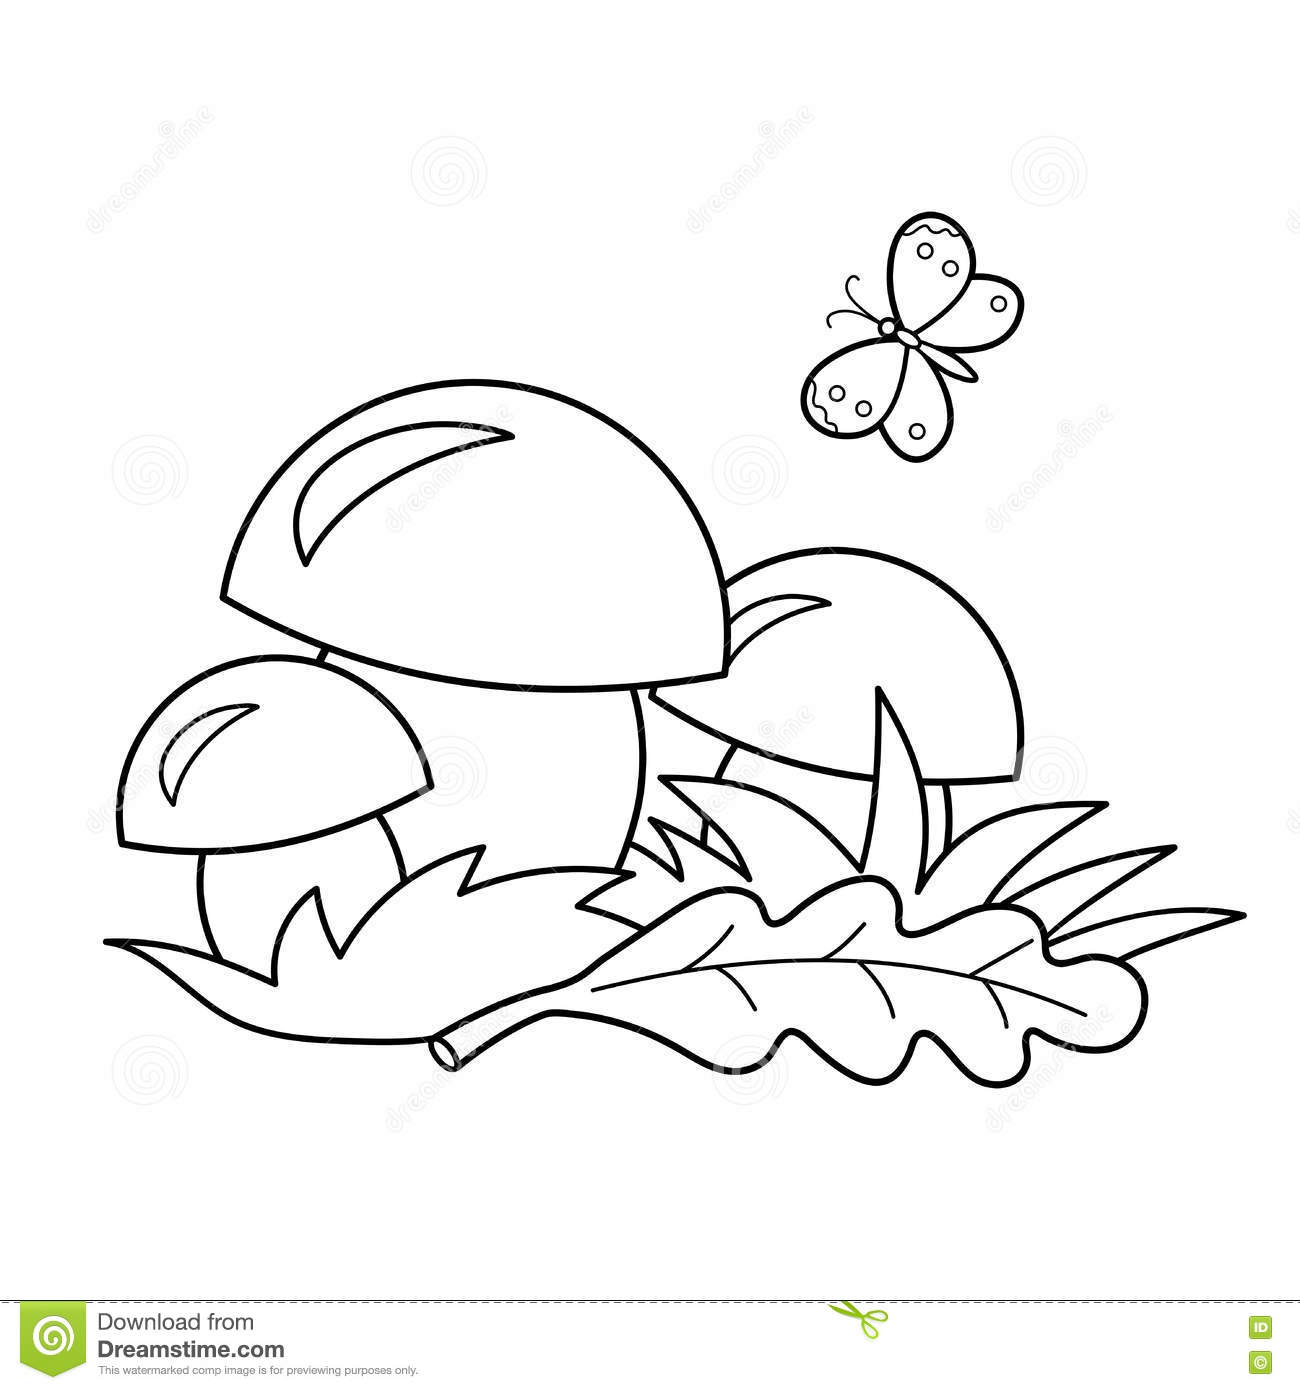 Coloring Page Outline Of Cartoon Mushrooms Summer Ts